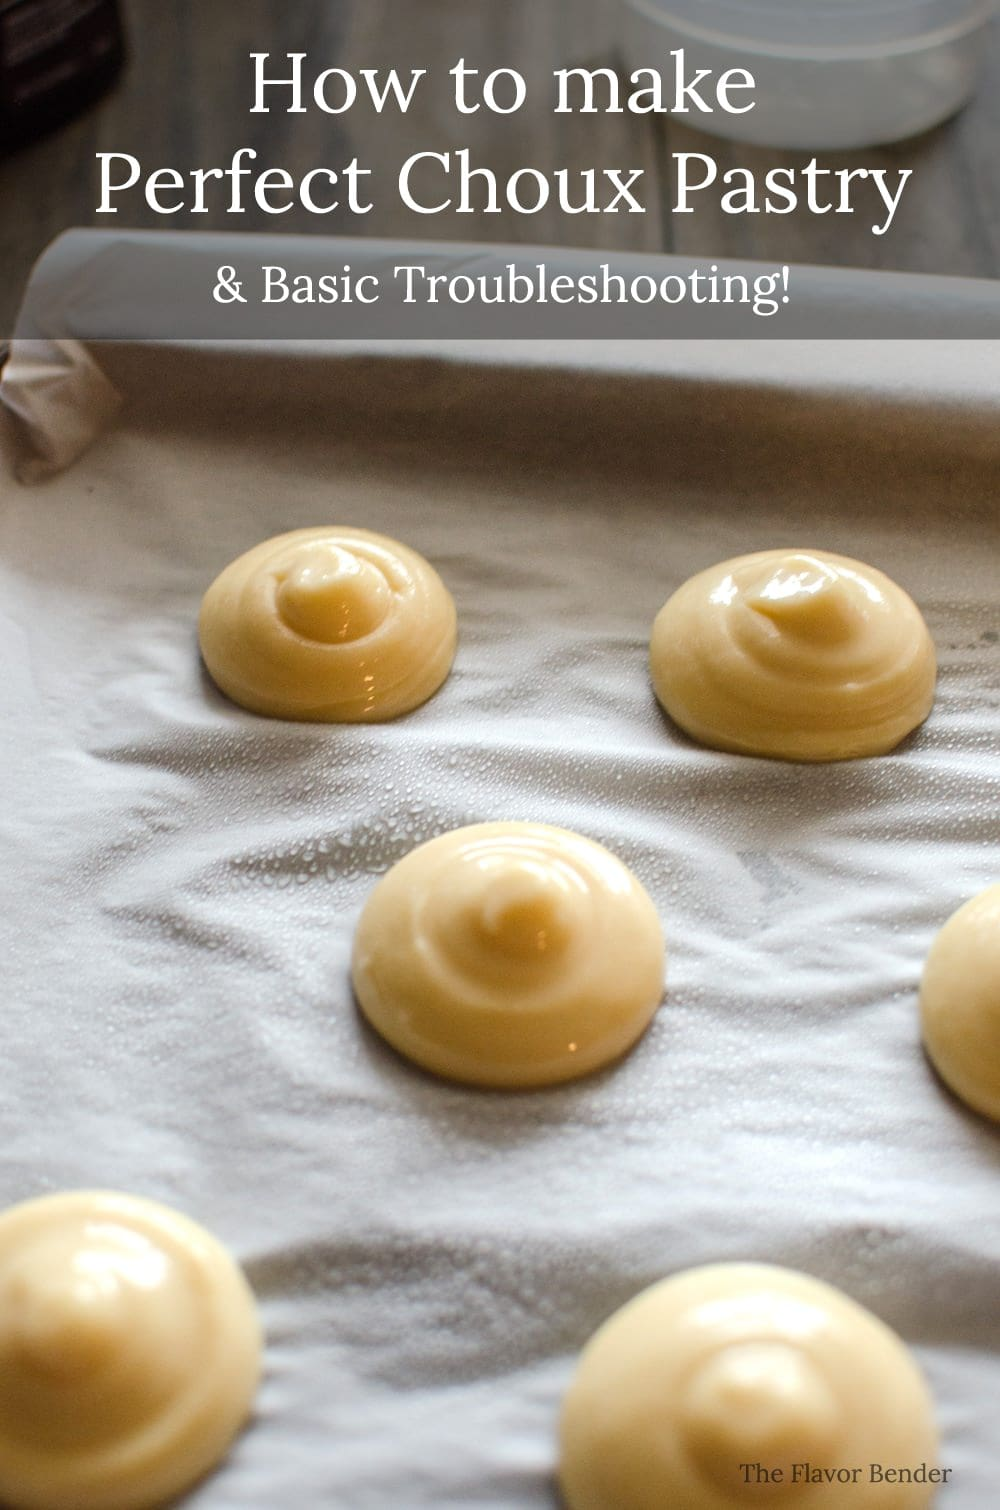 How To Make Perfect Choux Pastry